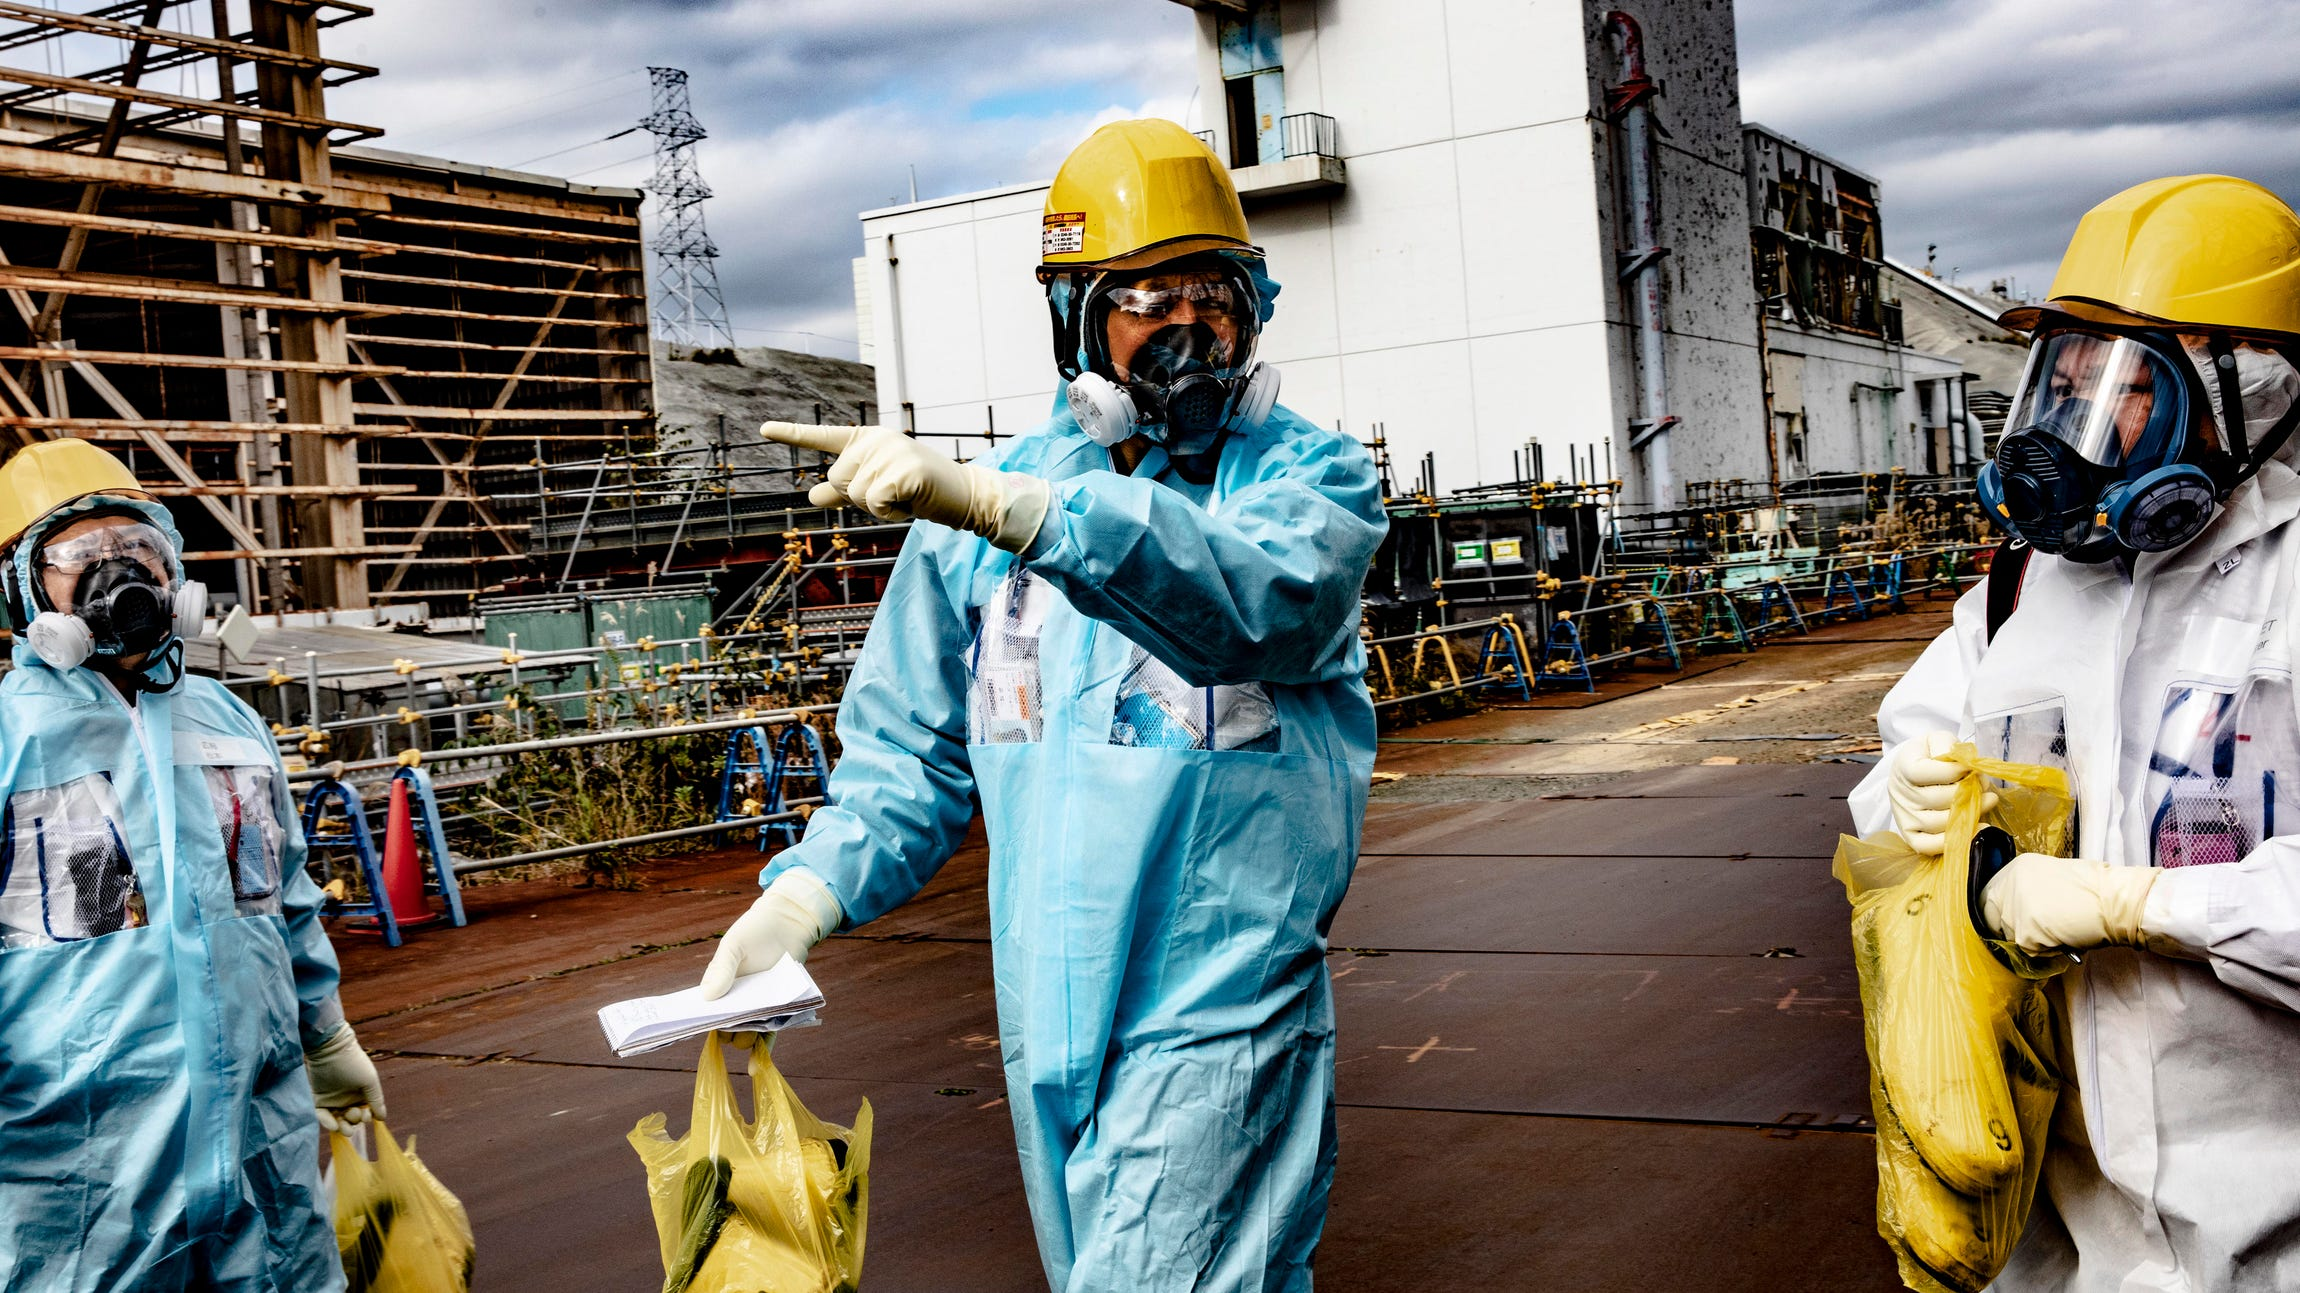 Fukushima Ice Wall prevents radioactive water from leaking